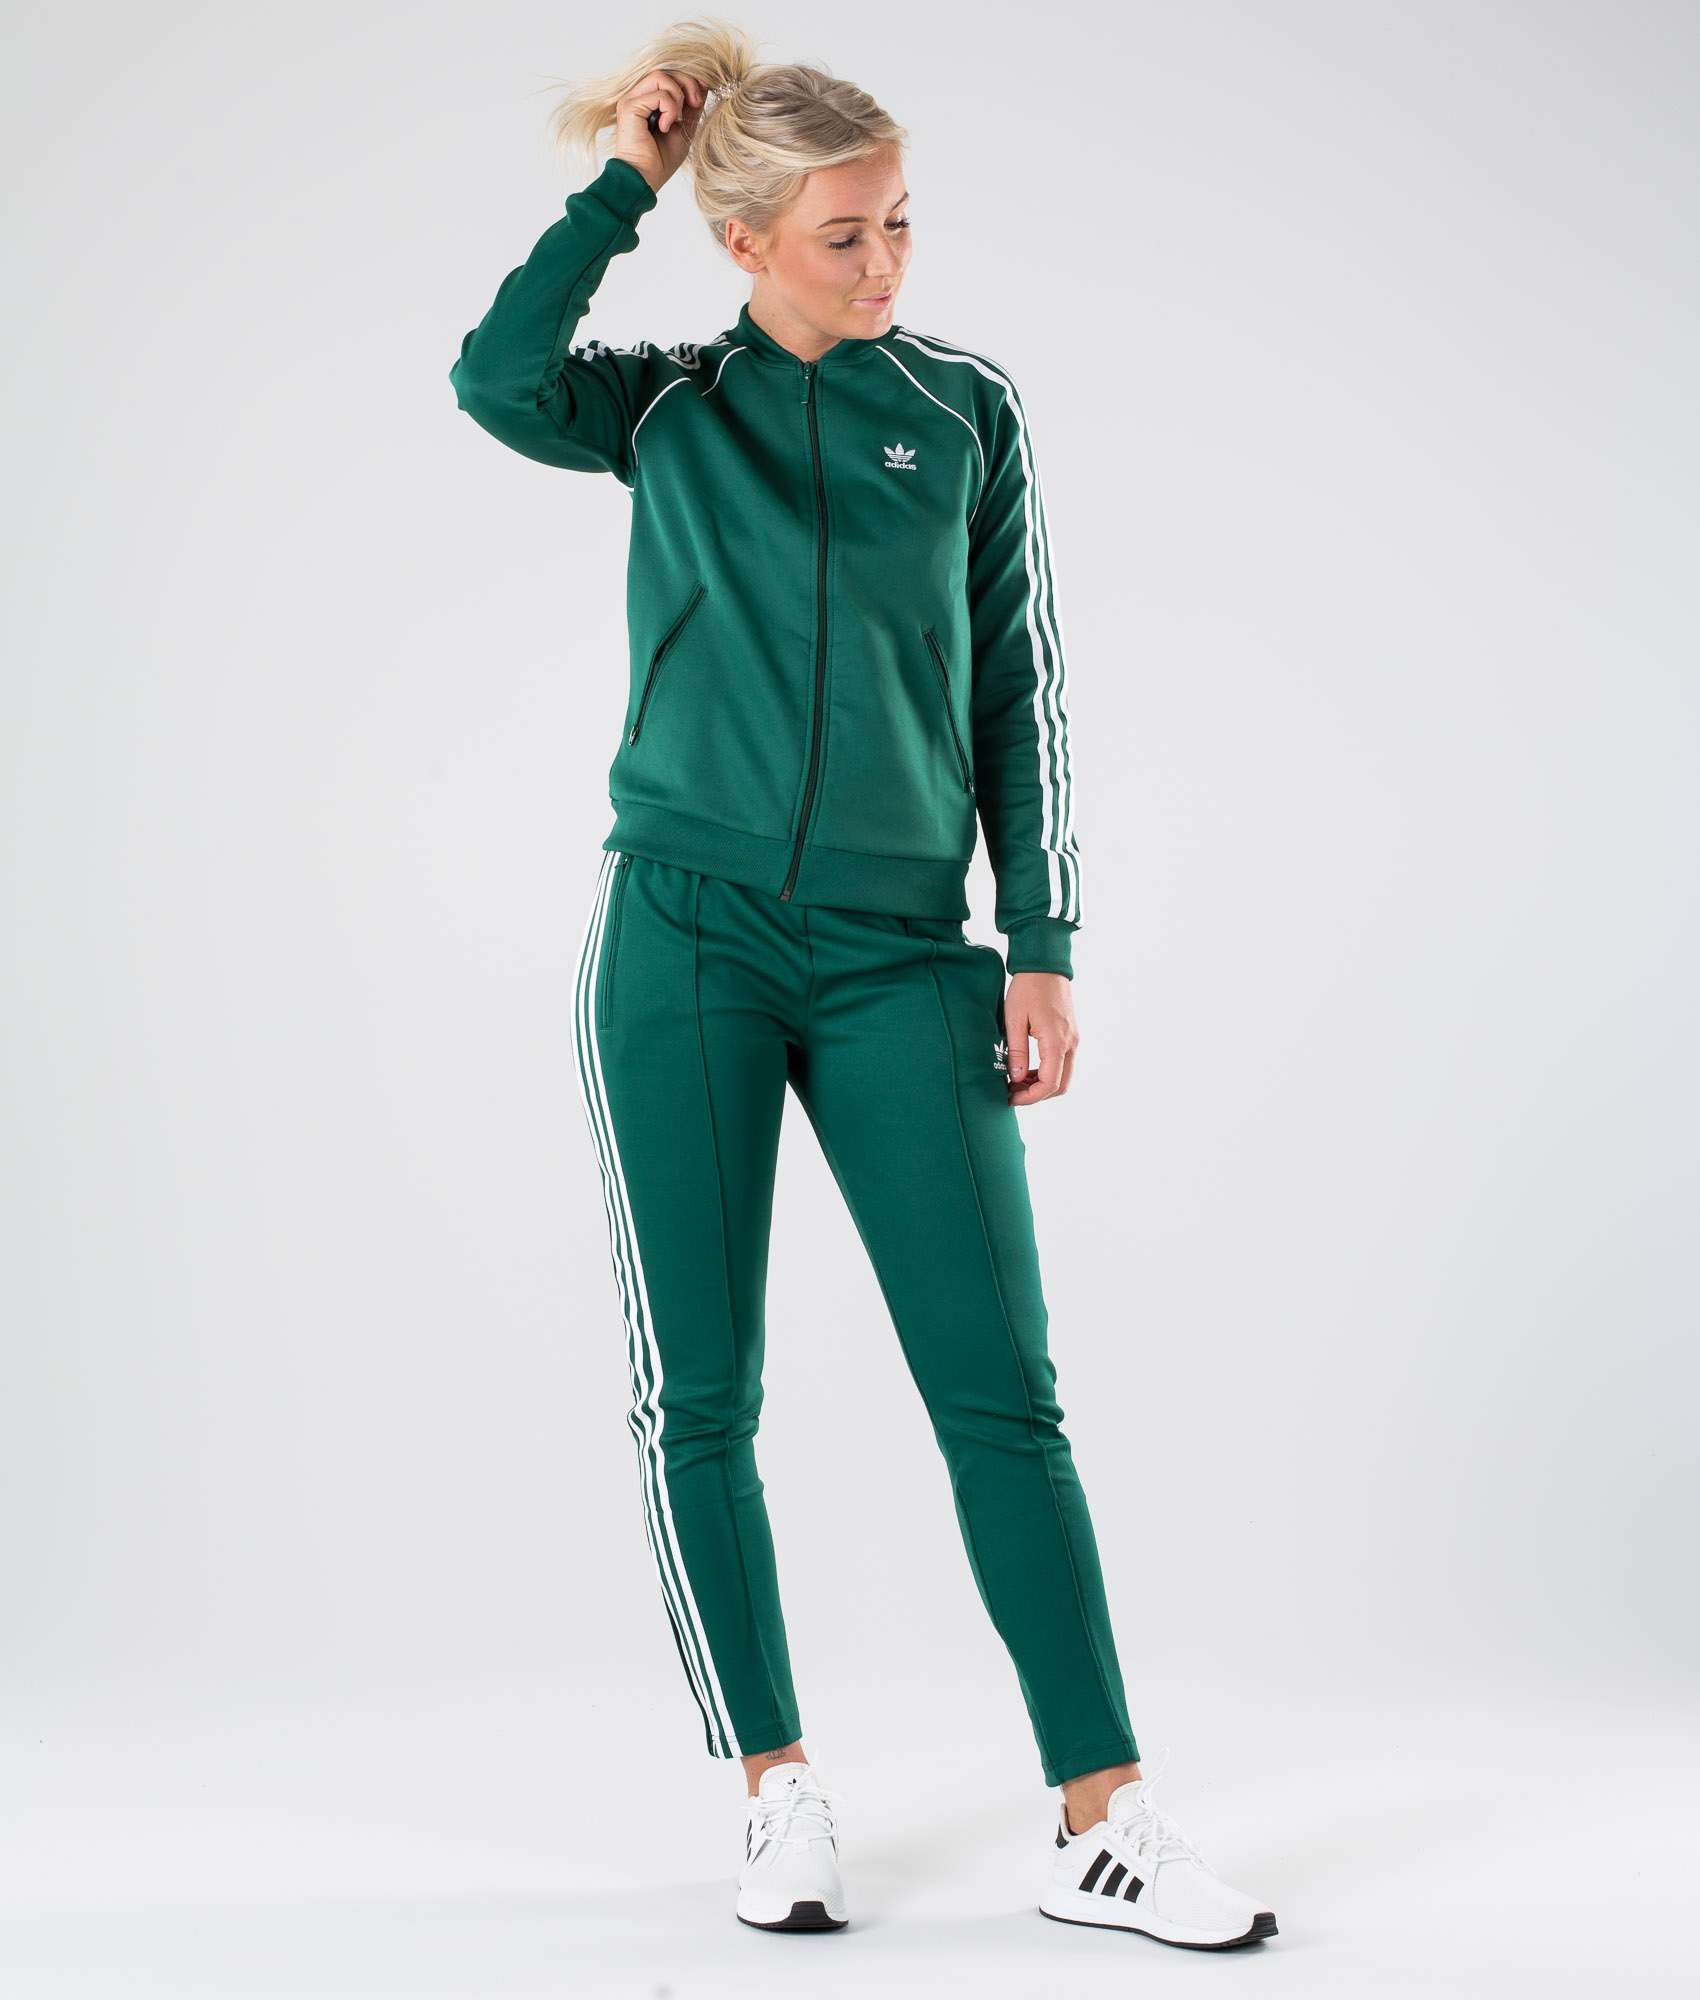 Adidas Originals Sst Tt Jacke Collegiate Green